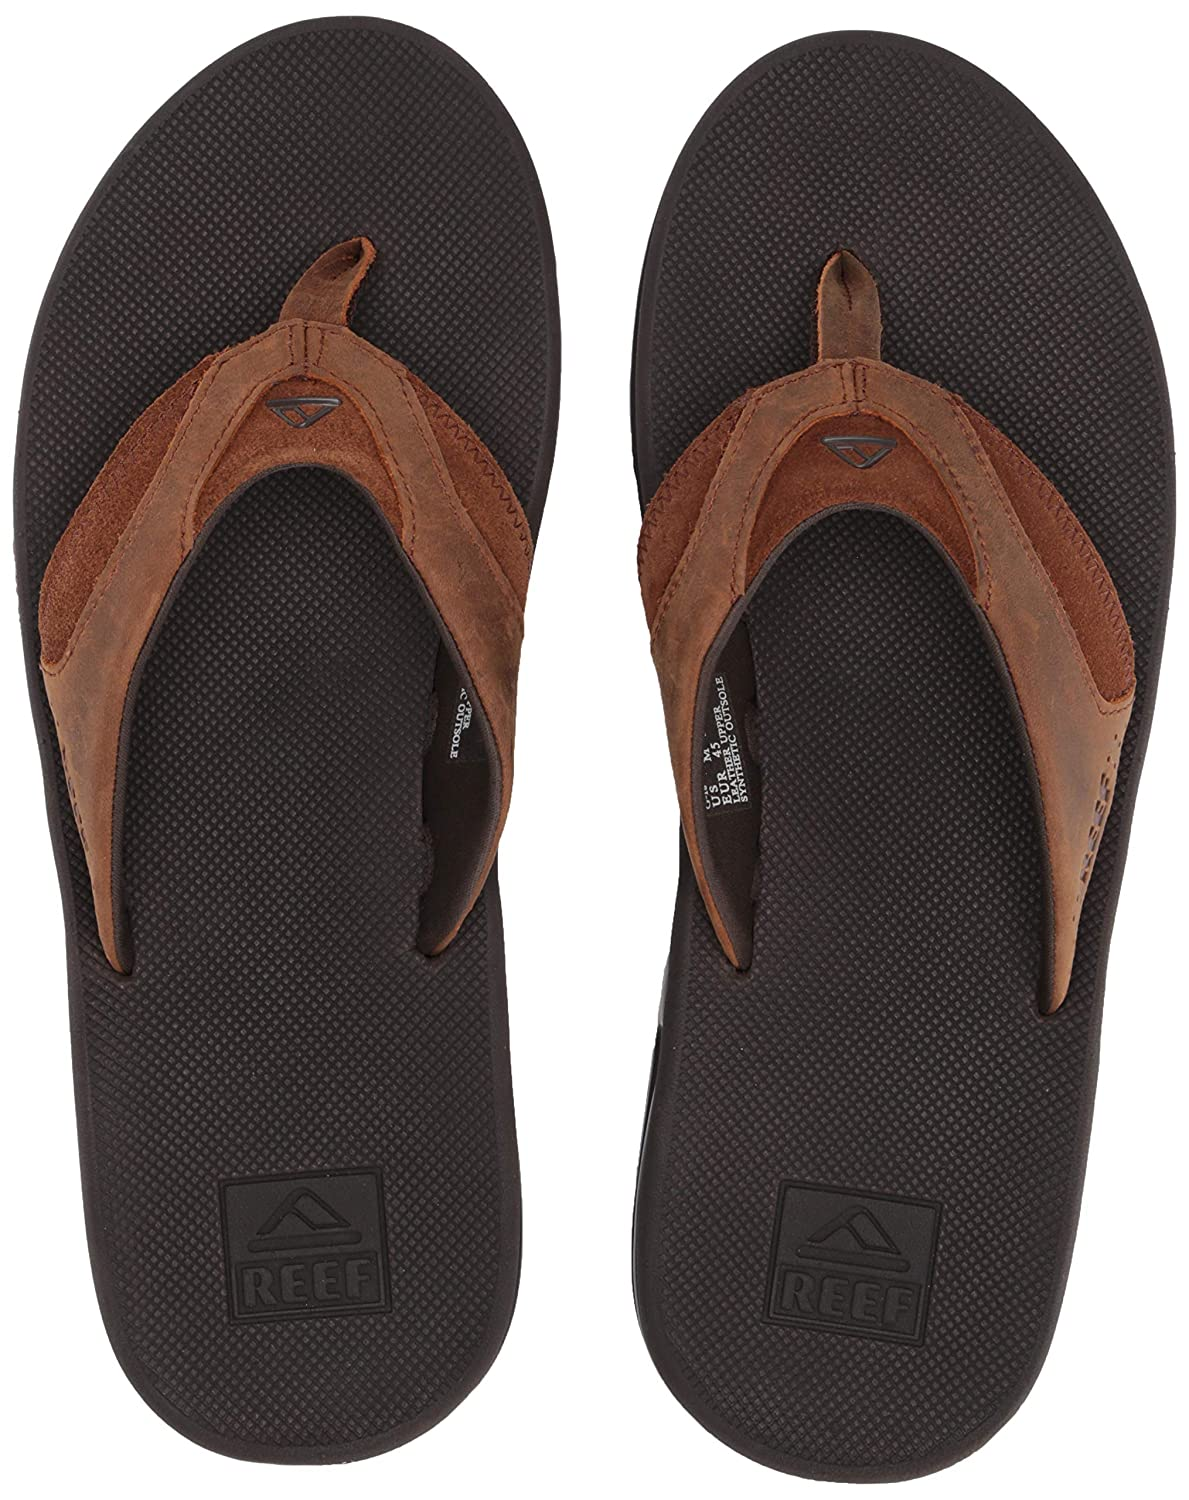 TALLA Small. Reef Leather Fanning, Chanclas para Hombre